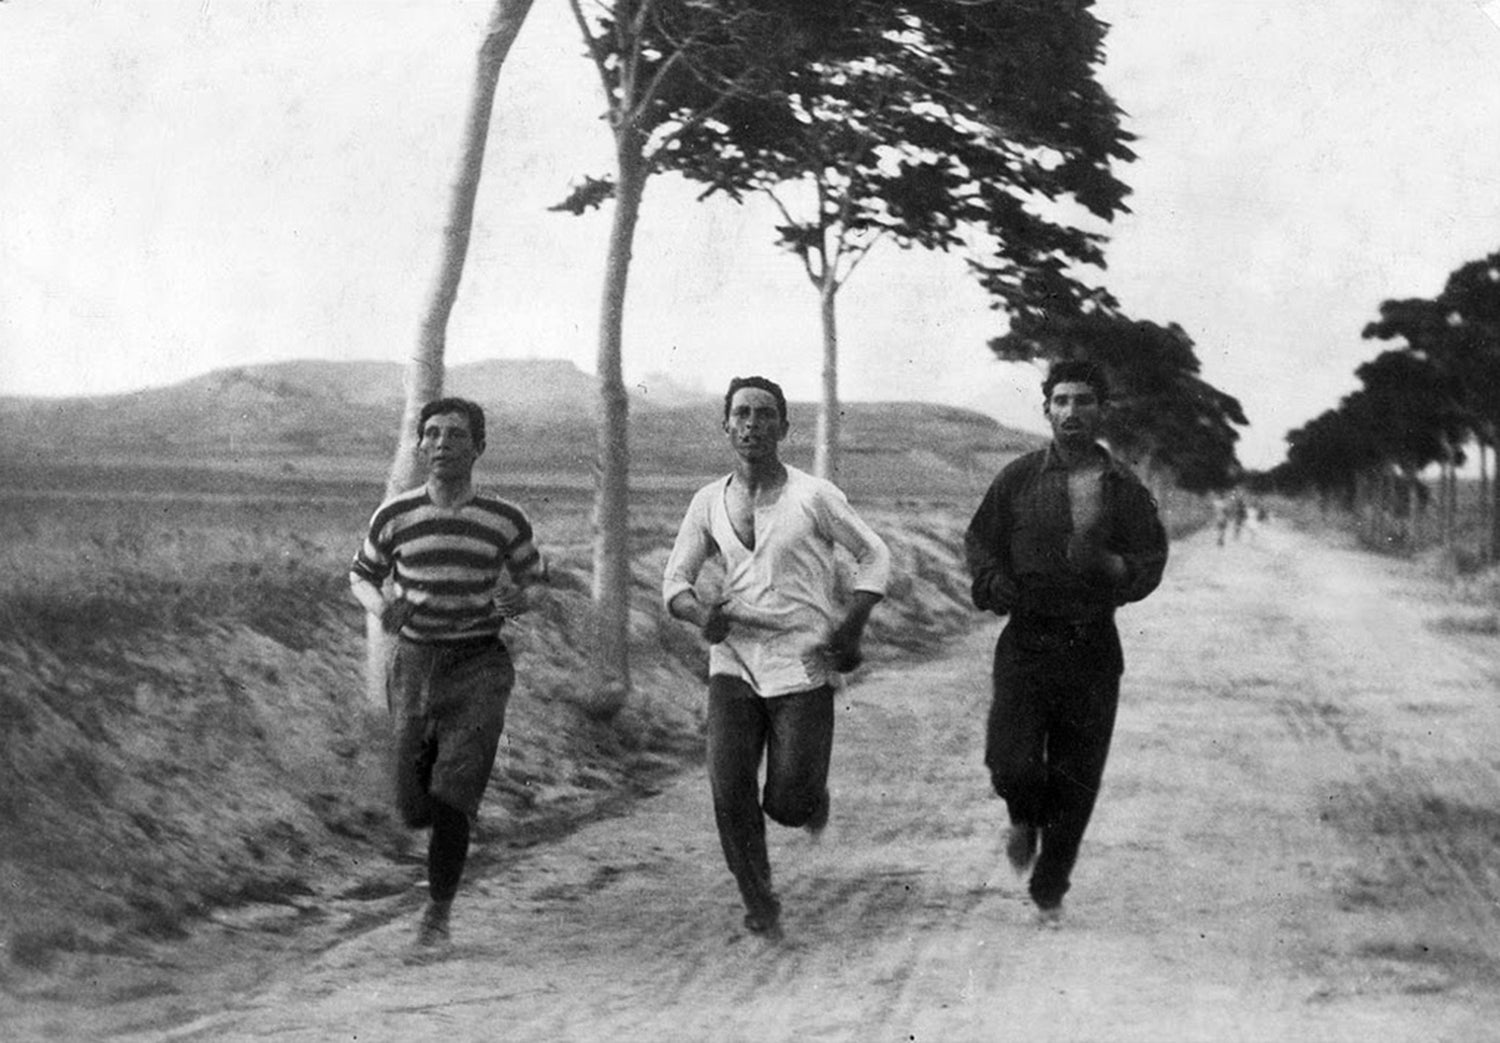 Three athletes in training for the marathon race of the 1896 Athens Olympic Games, on the road from Marathon, Greece, Vasilakos in the middle.